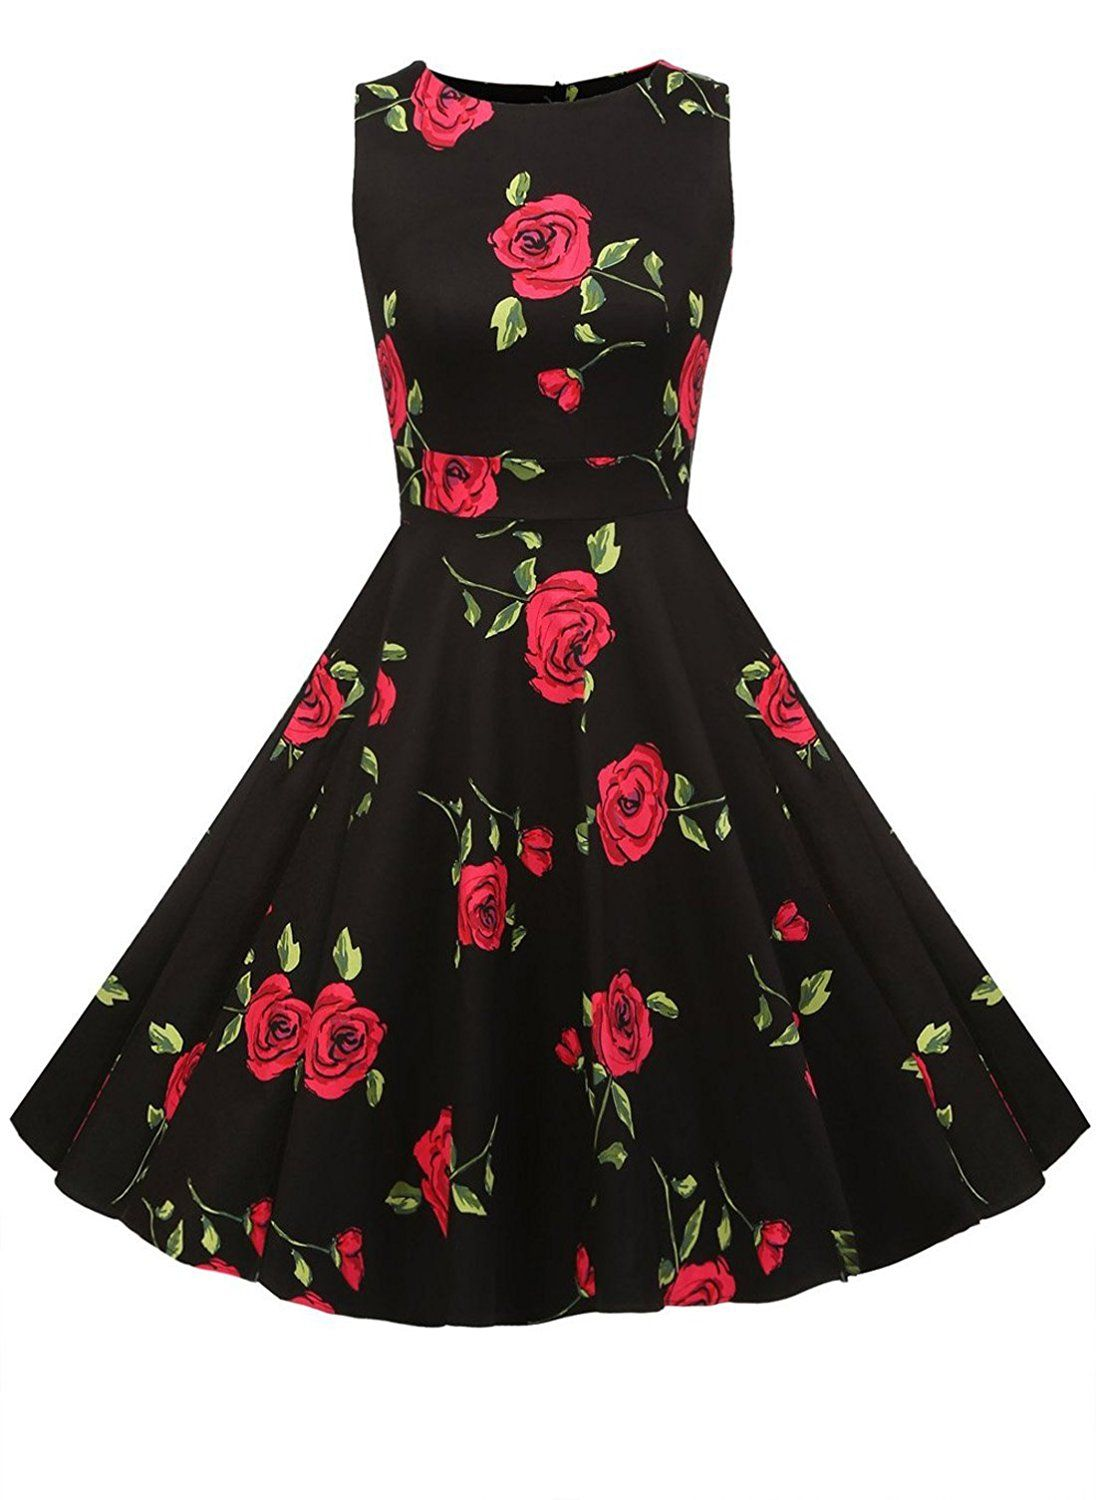 08b53e79442dd6 Relipop Women's Sleeveless Vintage Floral Dress Party Retro Cocktail Dresses  *** Startling review available here : Dresses